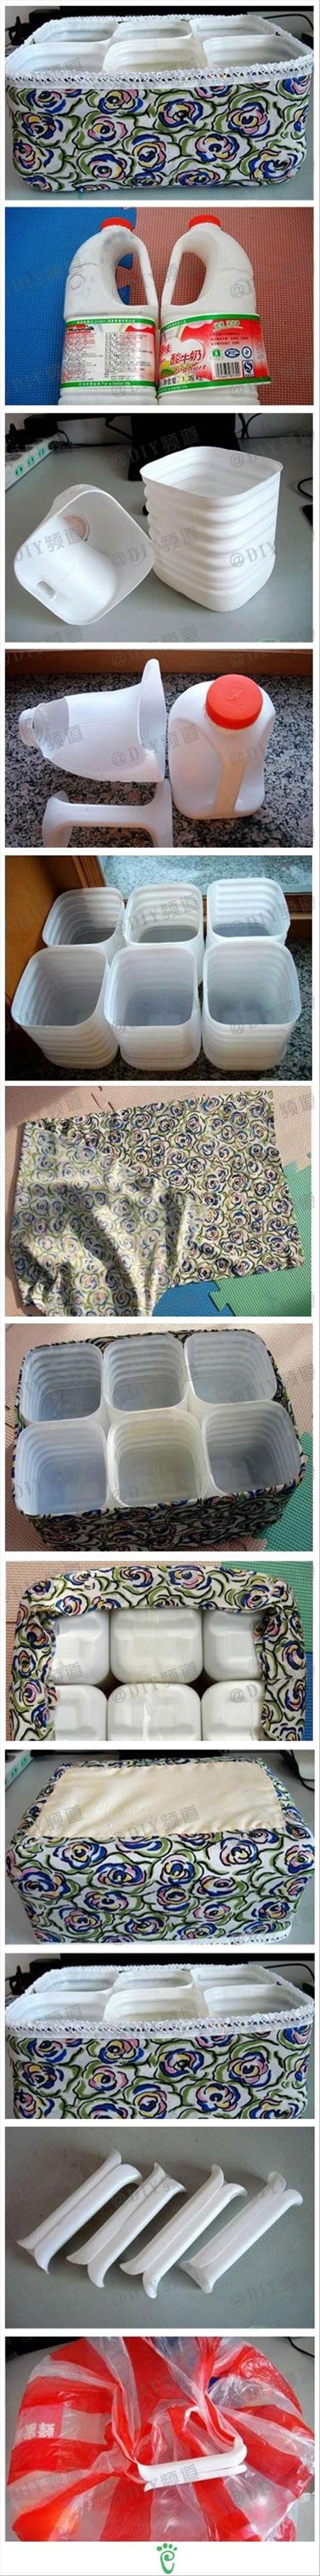 best ideas for the house images on pinterest fabric scraps